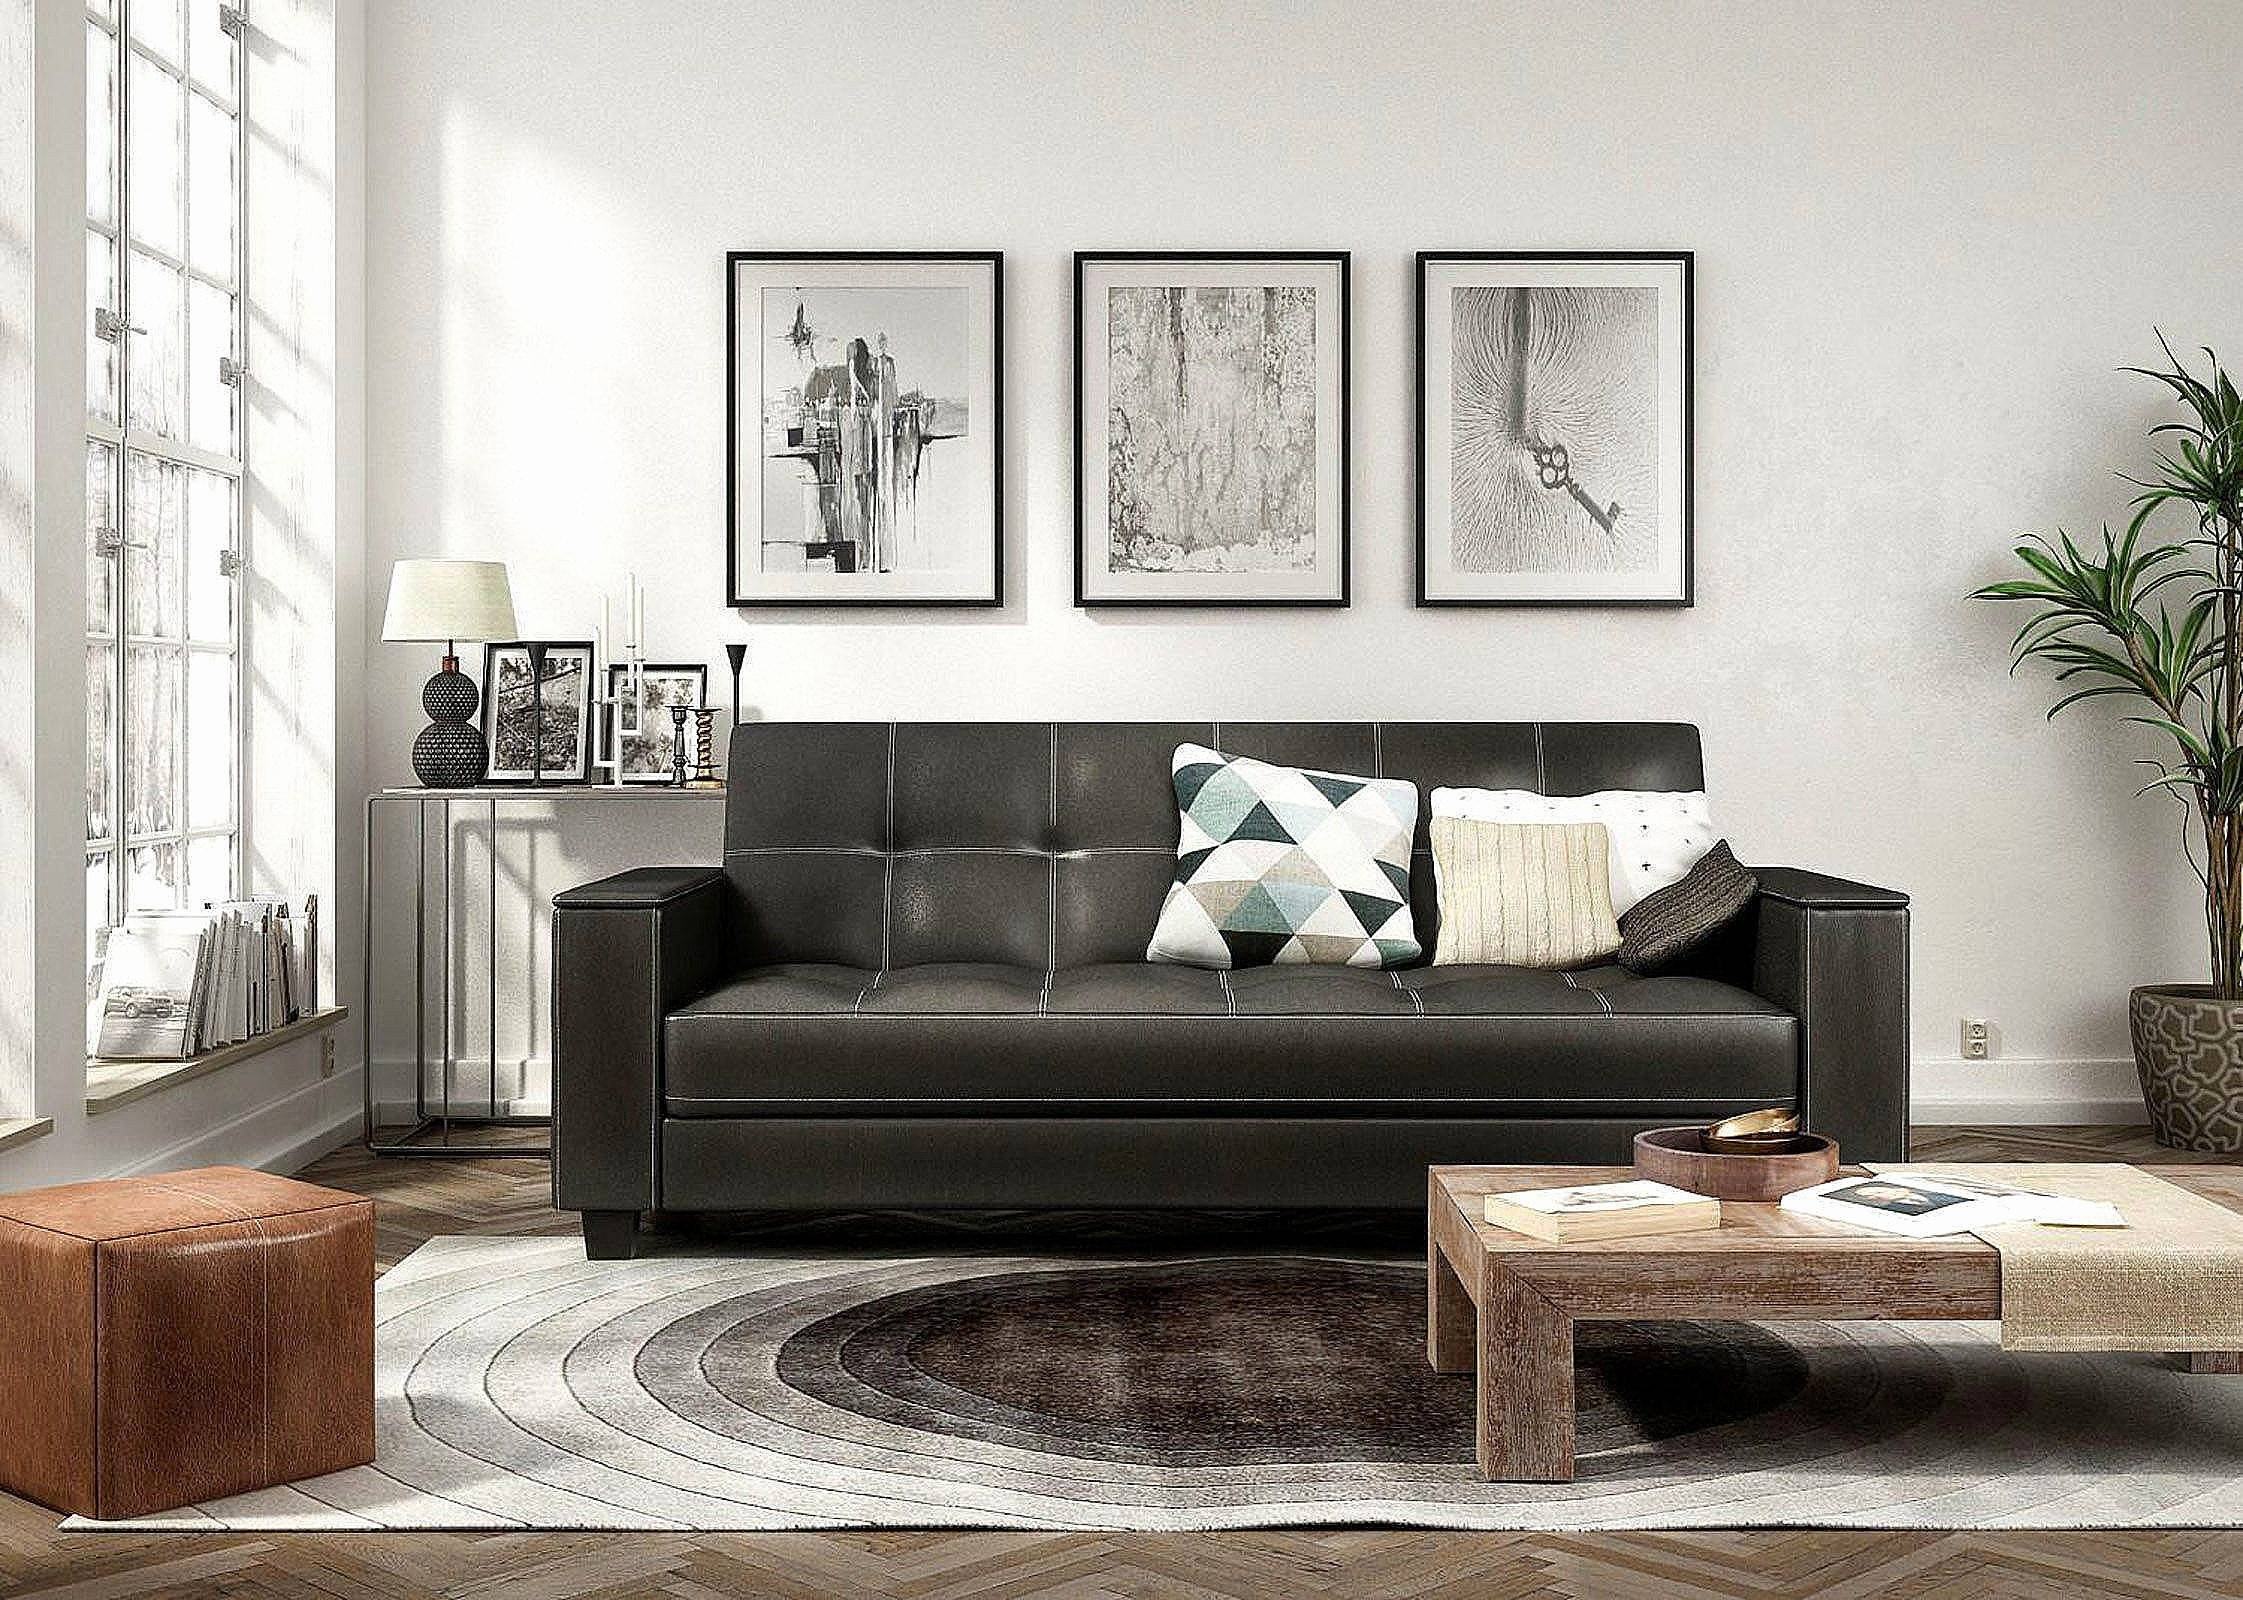 grey hardwood floors houzz of gray living room chairs awesome coffee table decor ideas houzz pertaining to gray living room chairs inspirational awesome modern living room furniture new guns